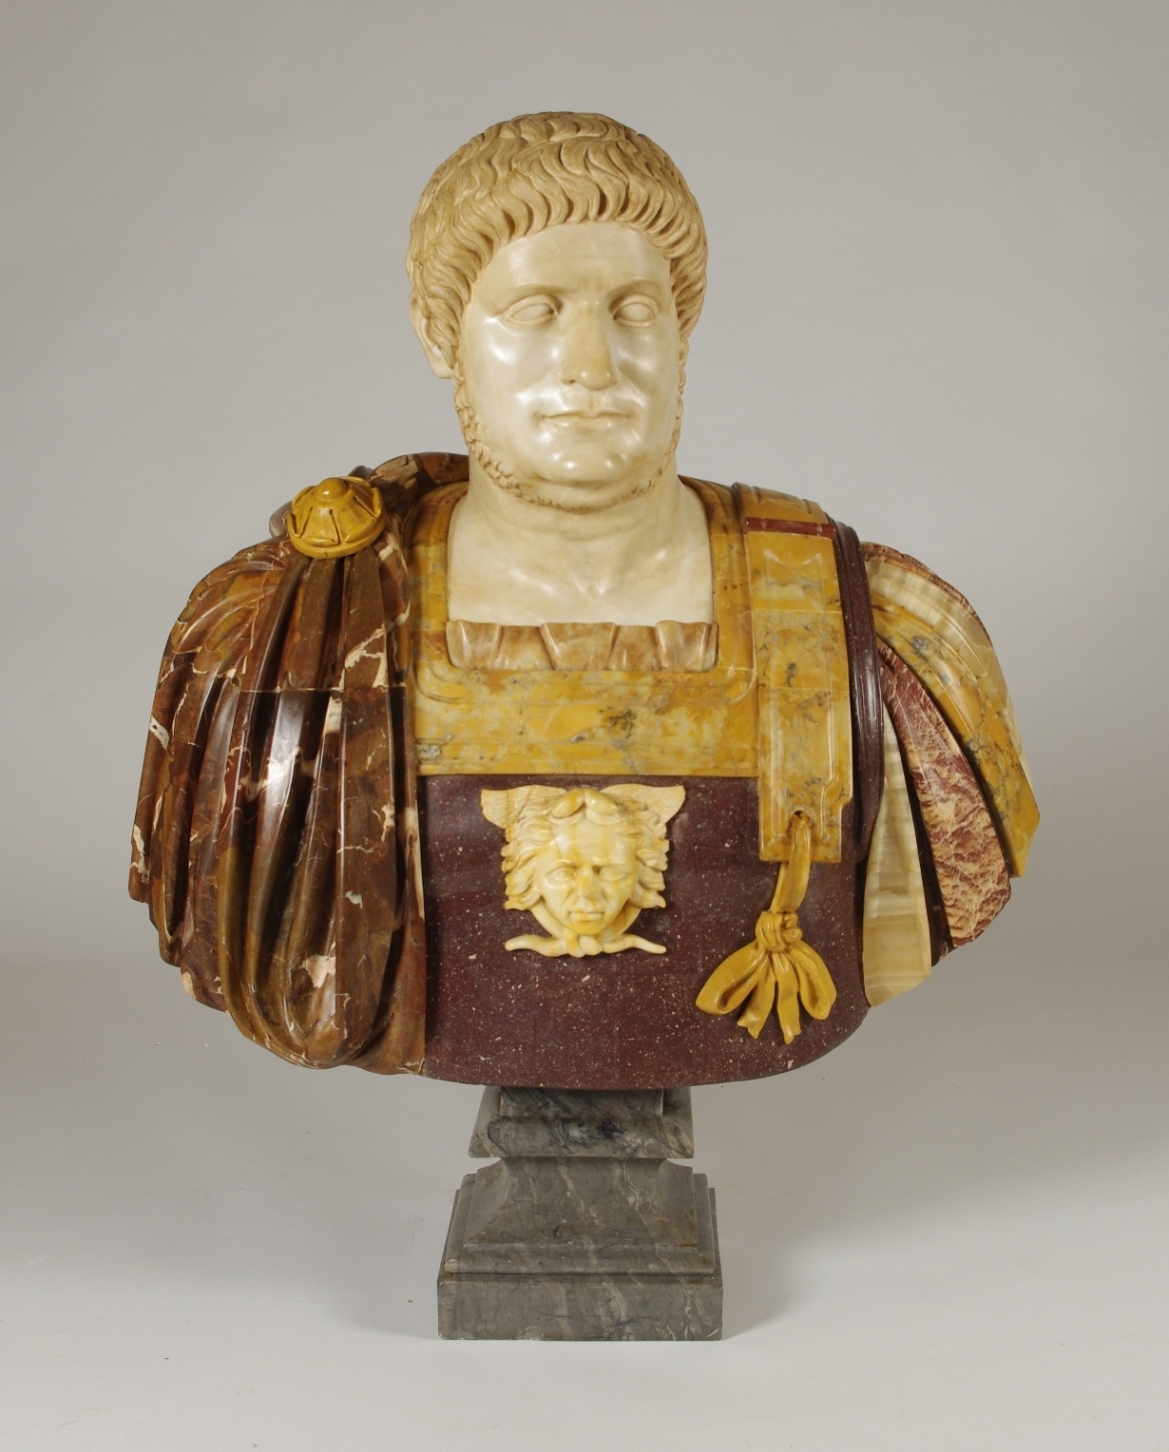 View 3: Marble and Porphyry Bust of the Emperor Nero